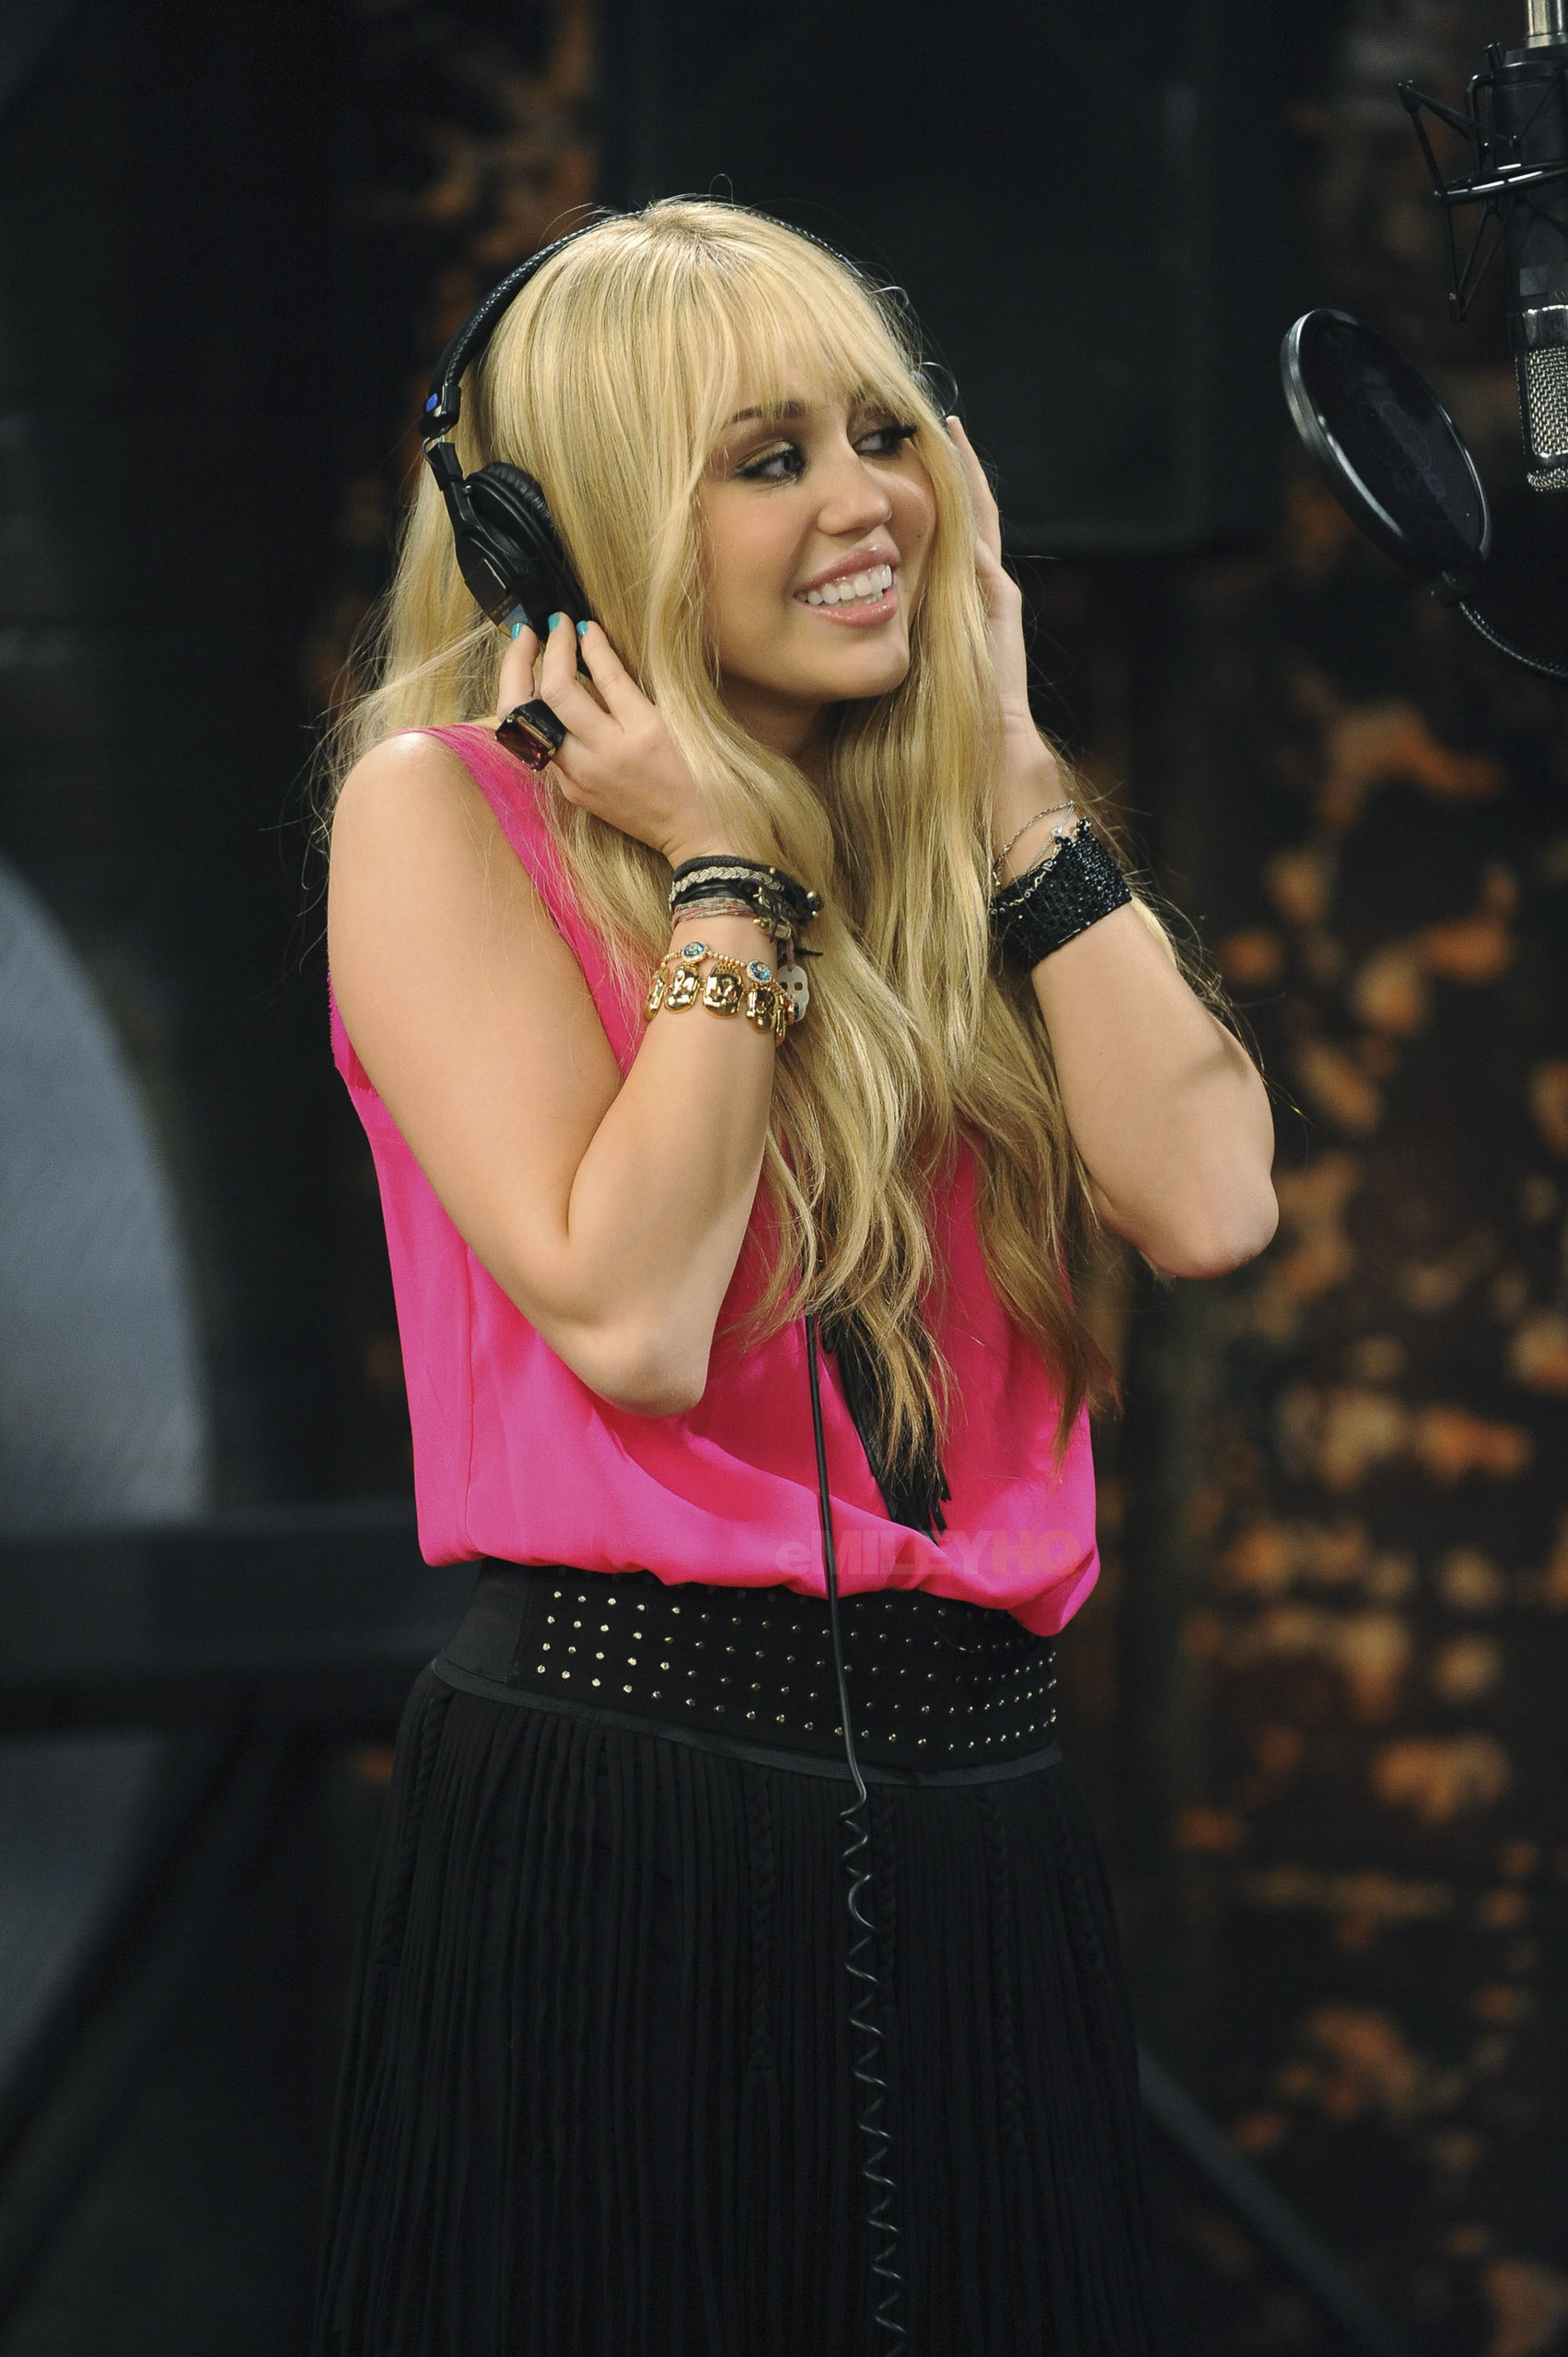 Hannah's Gonna Get This - hannah-montana photo